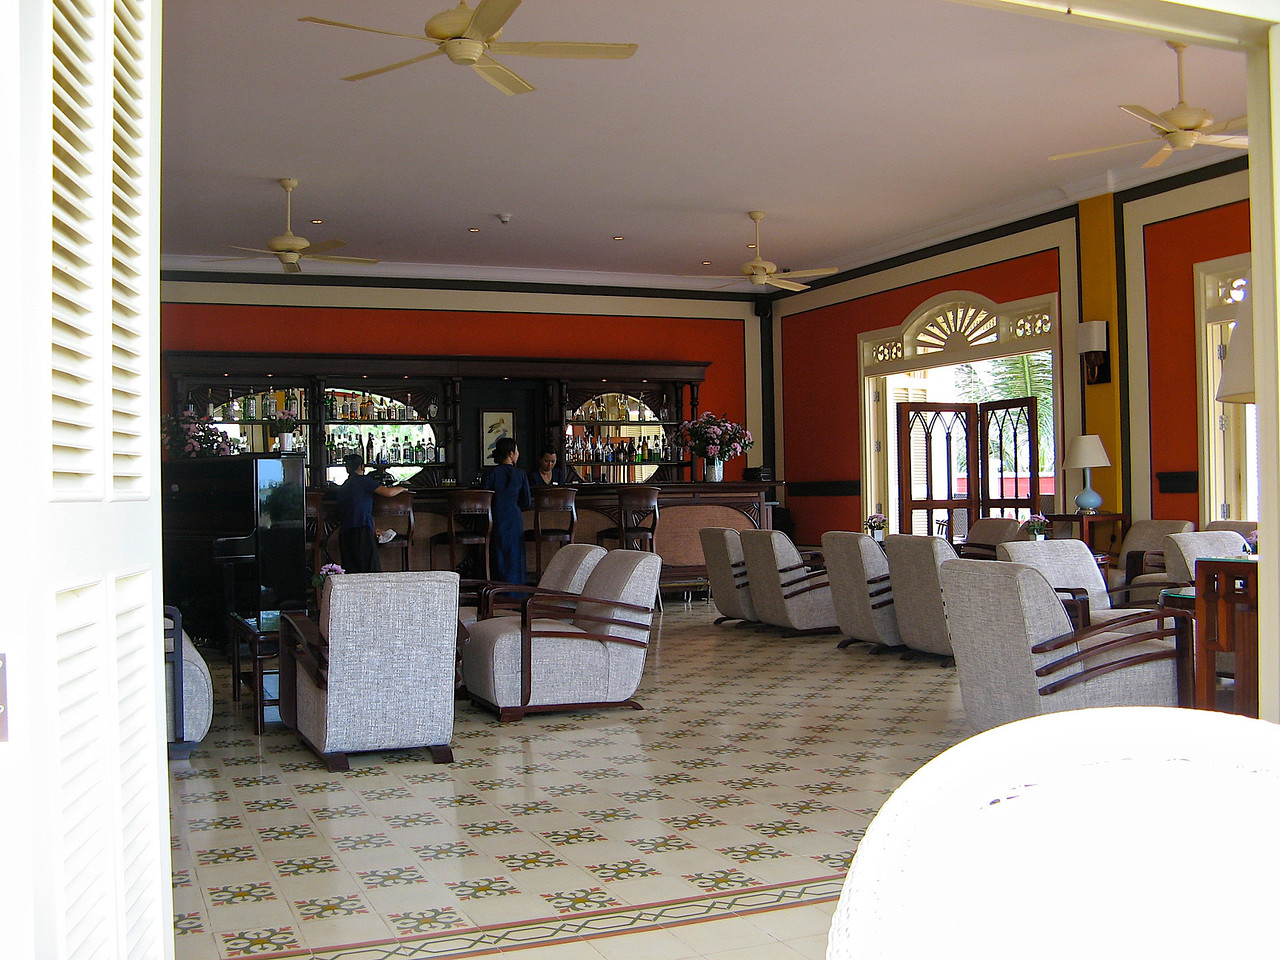 There's a large bar and lounge area where you can relax..